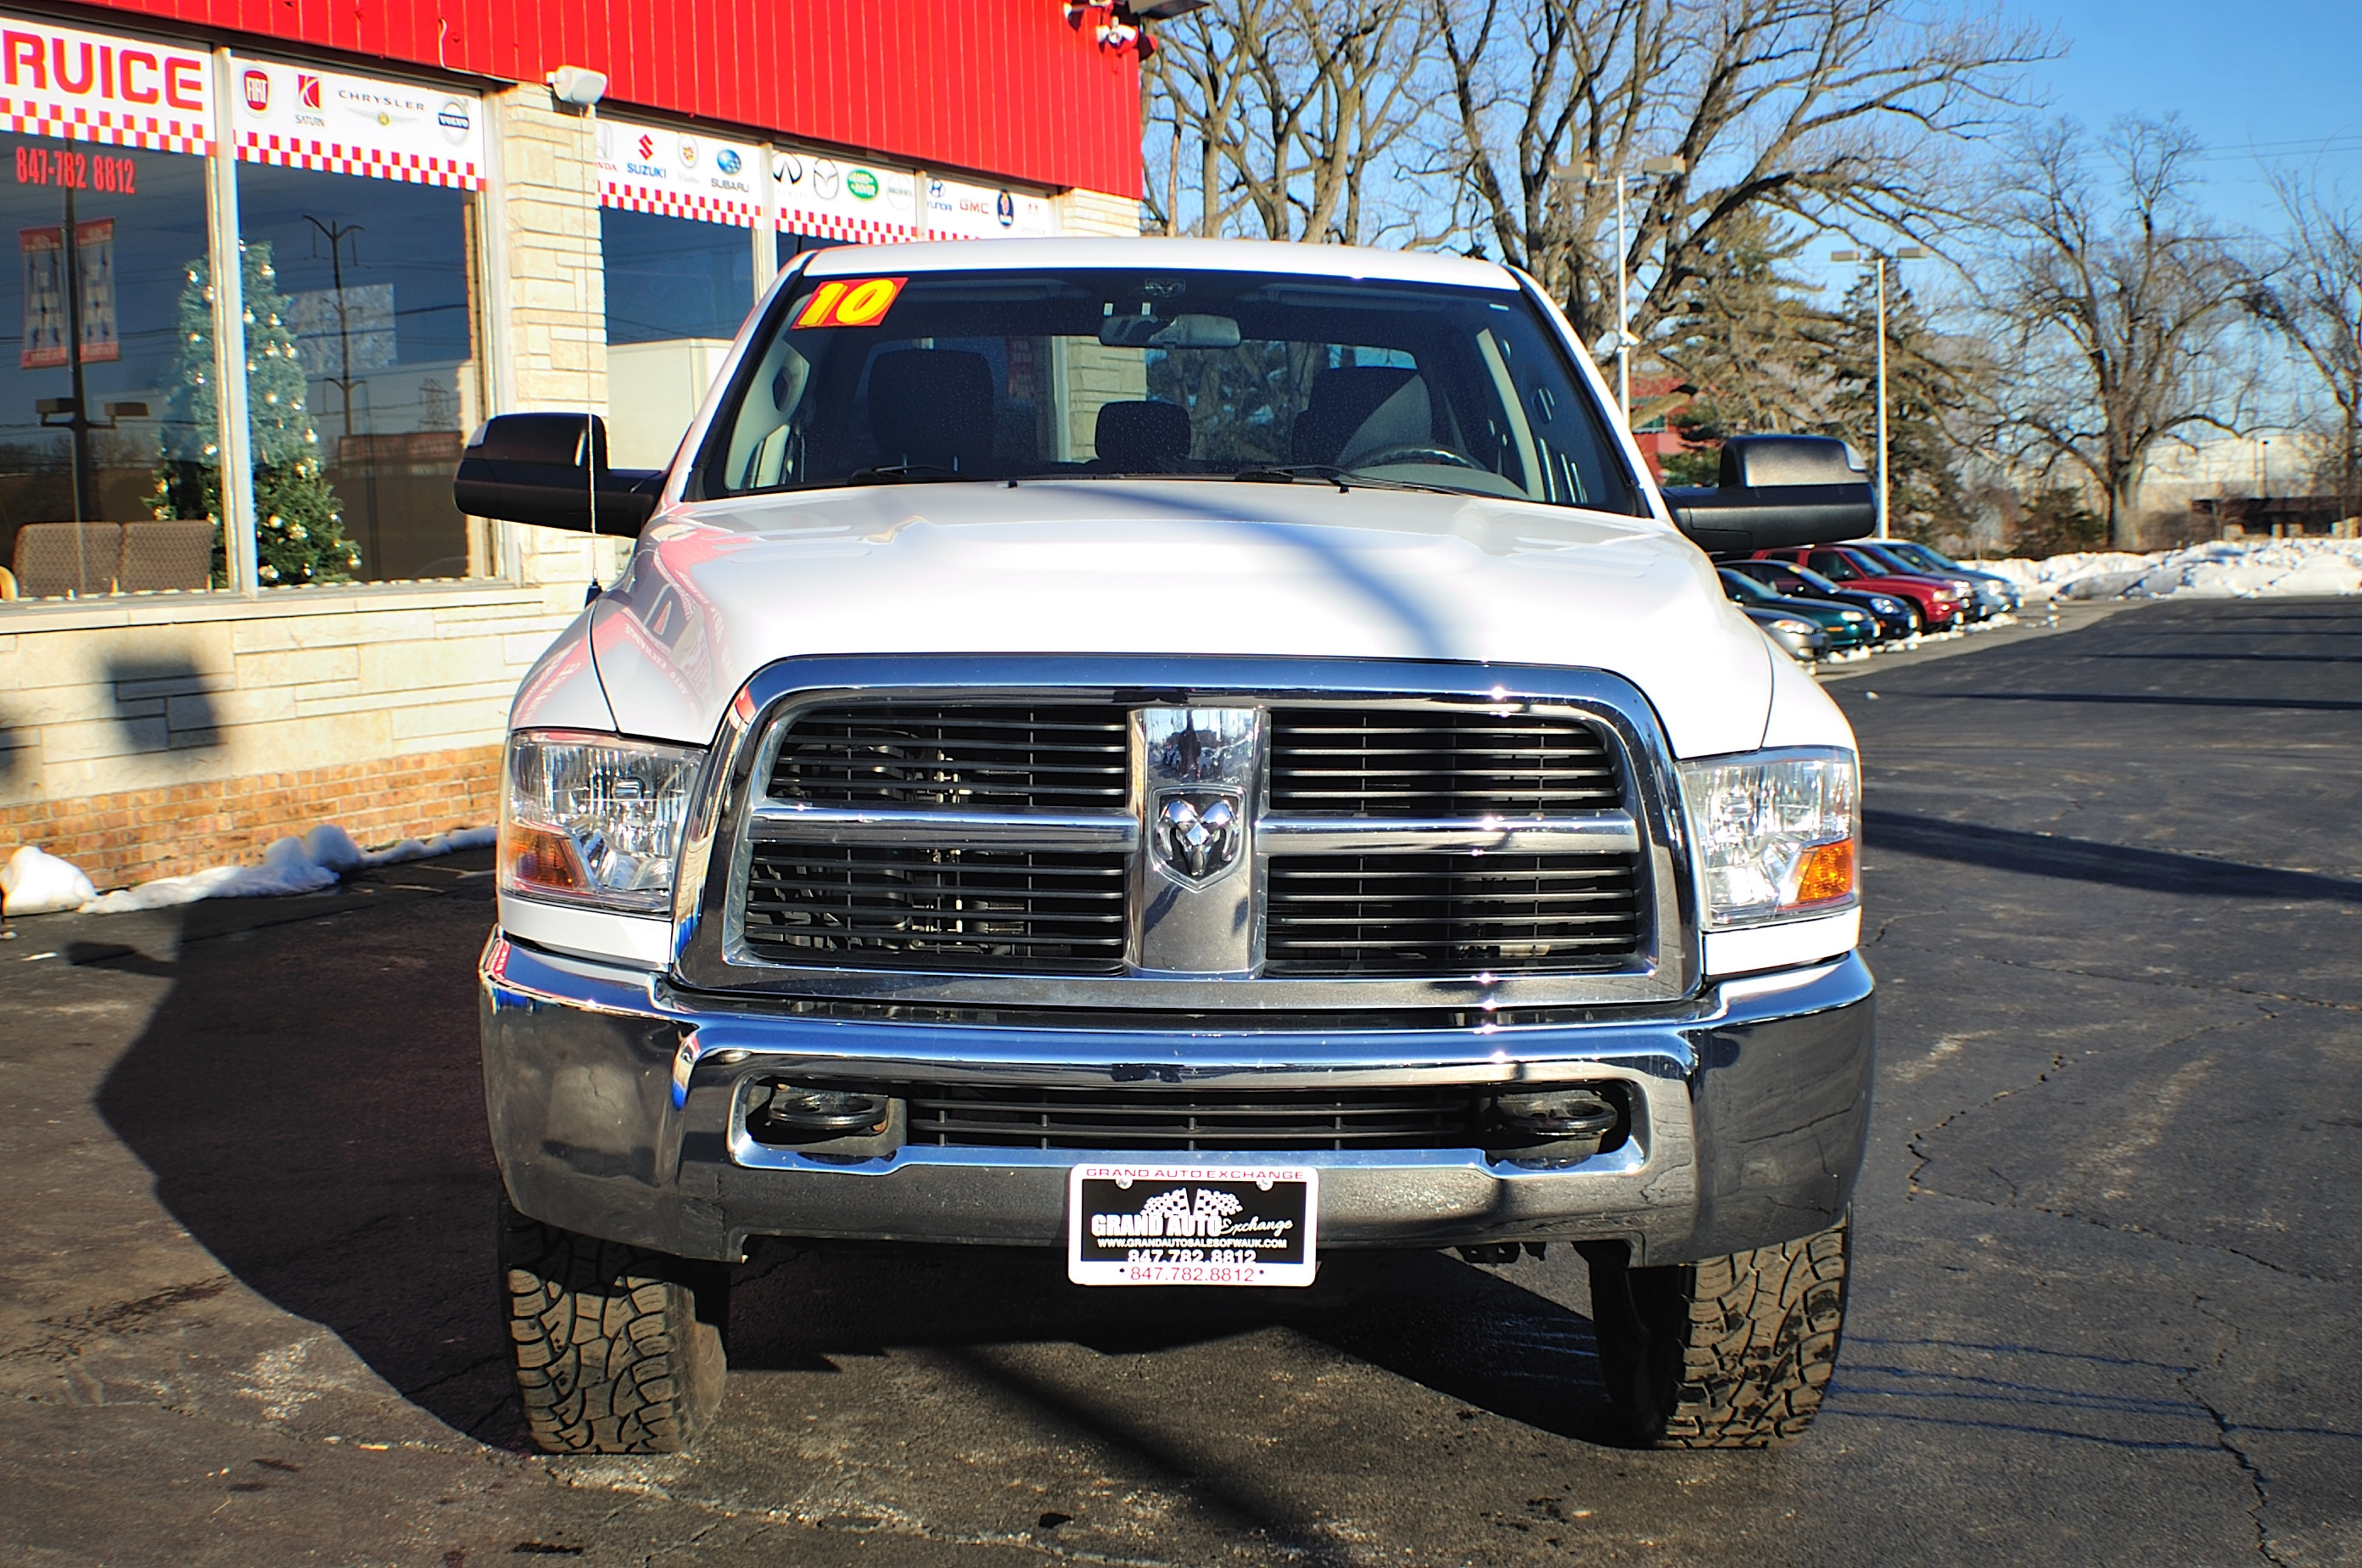 2010 Dodge Ram 2500 HD White Used 4x4 Truck Sale Gurnee Kenosha Mchenry